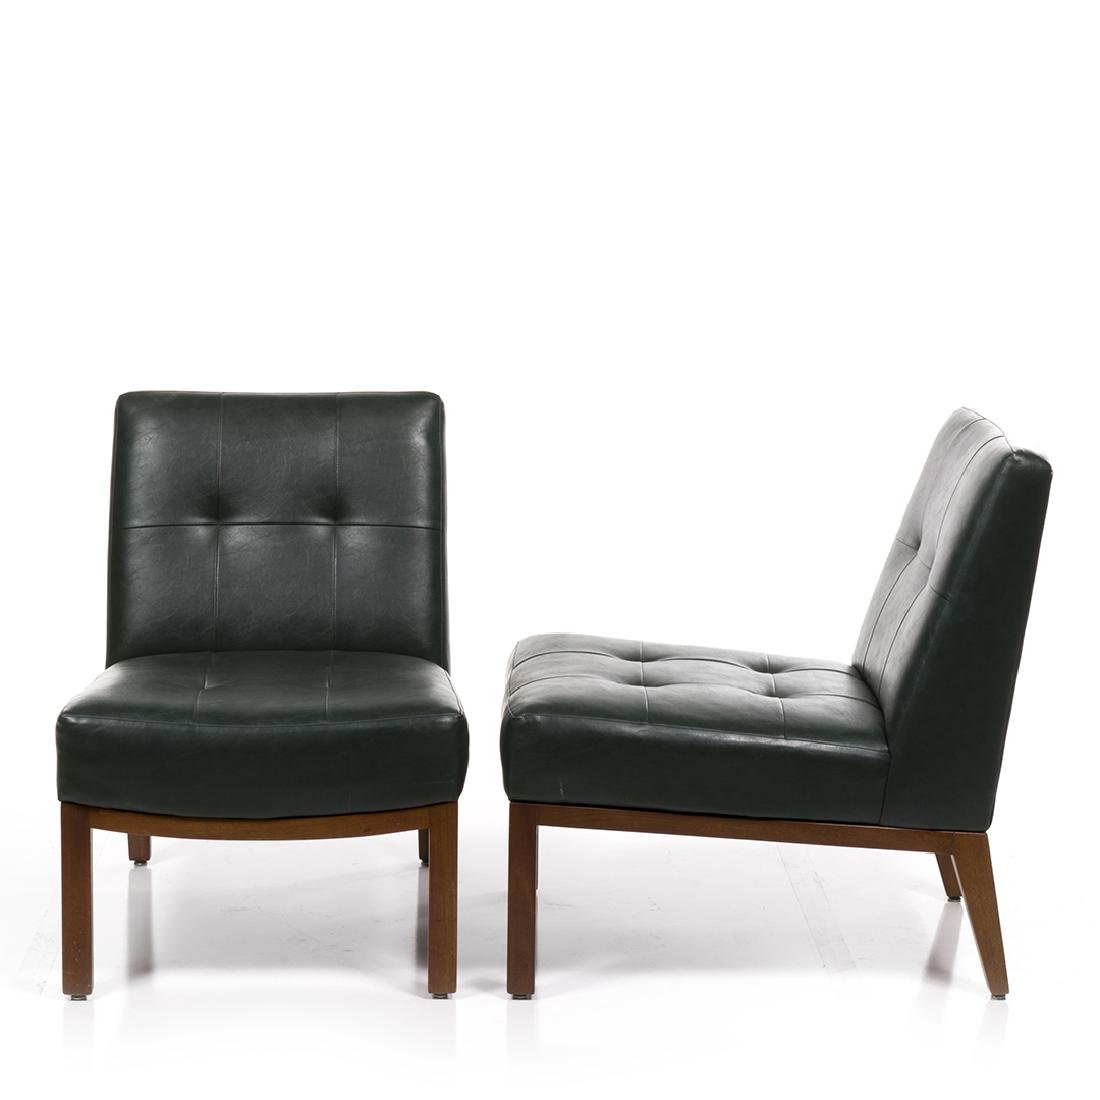 Edward Wormley Slipper Chairs (2) - 2